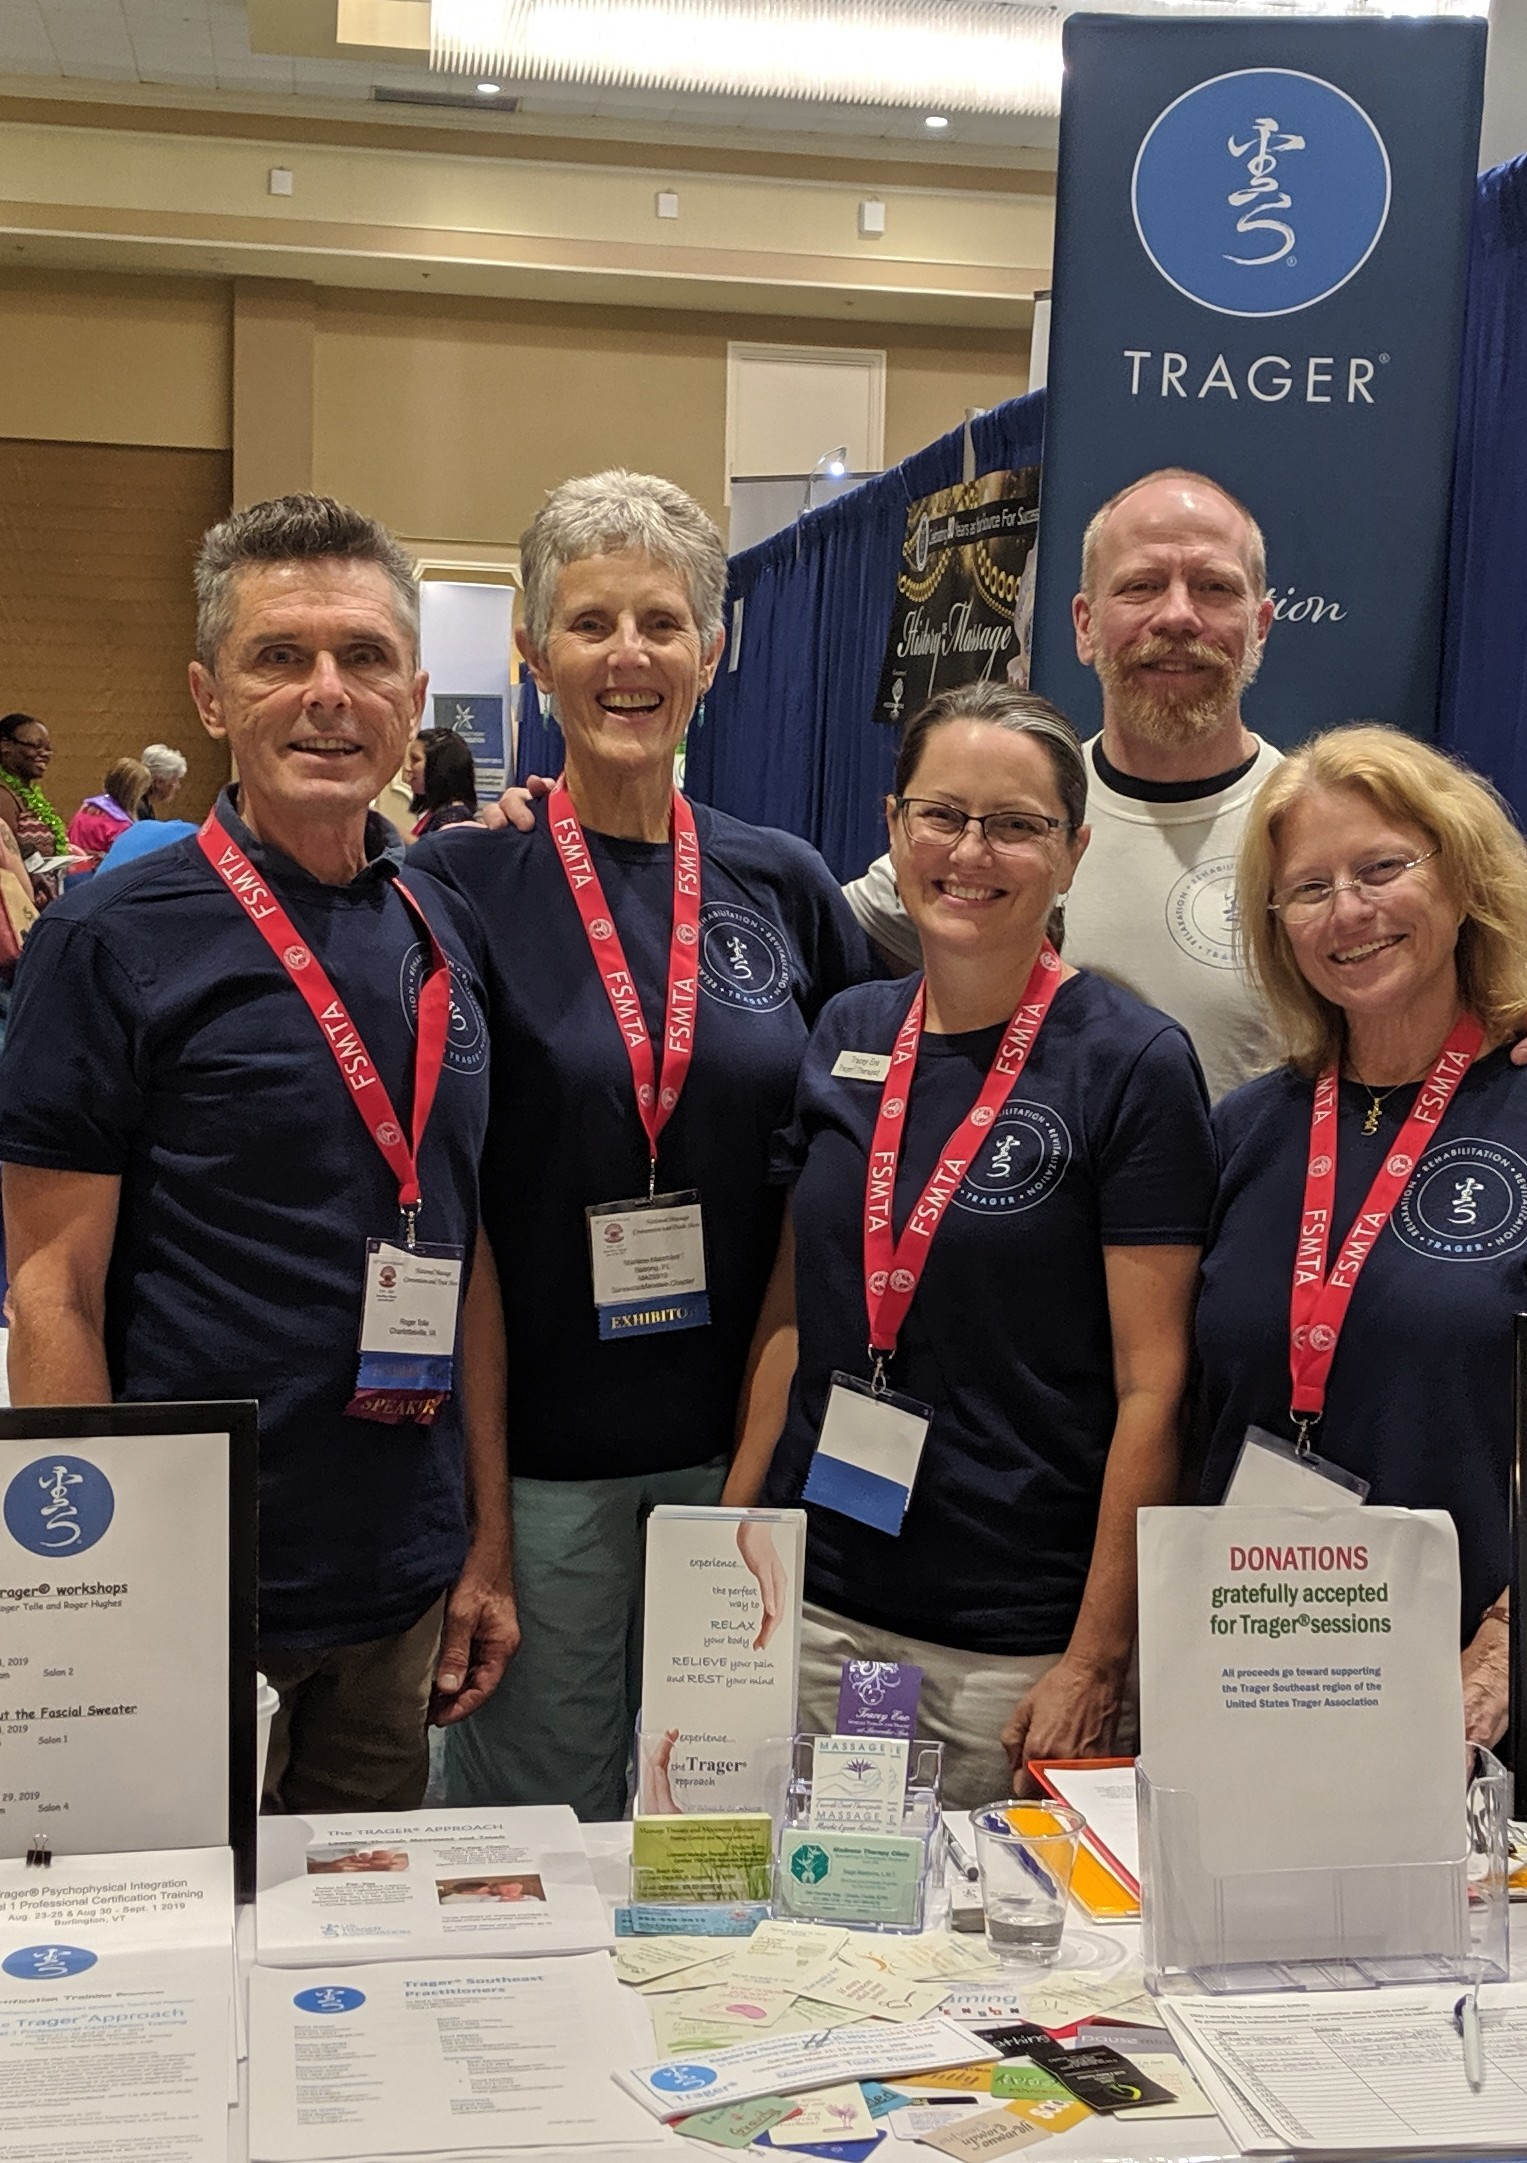 Trager Booth at 2019 FSMTA Convention Photo.jpg